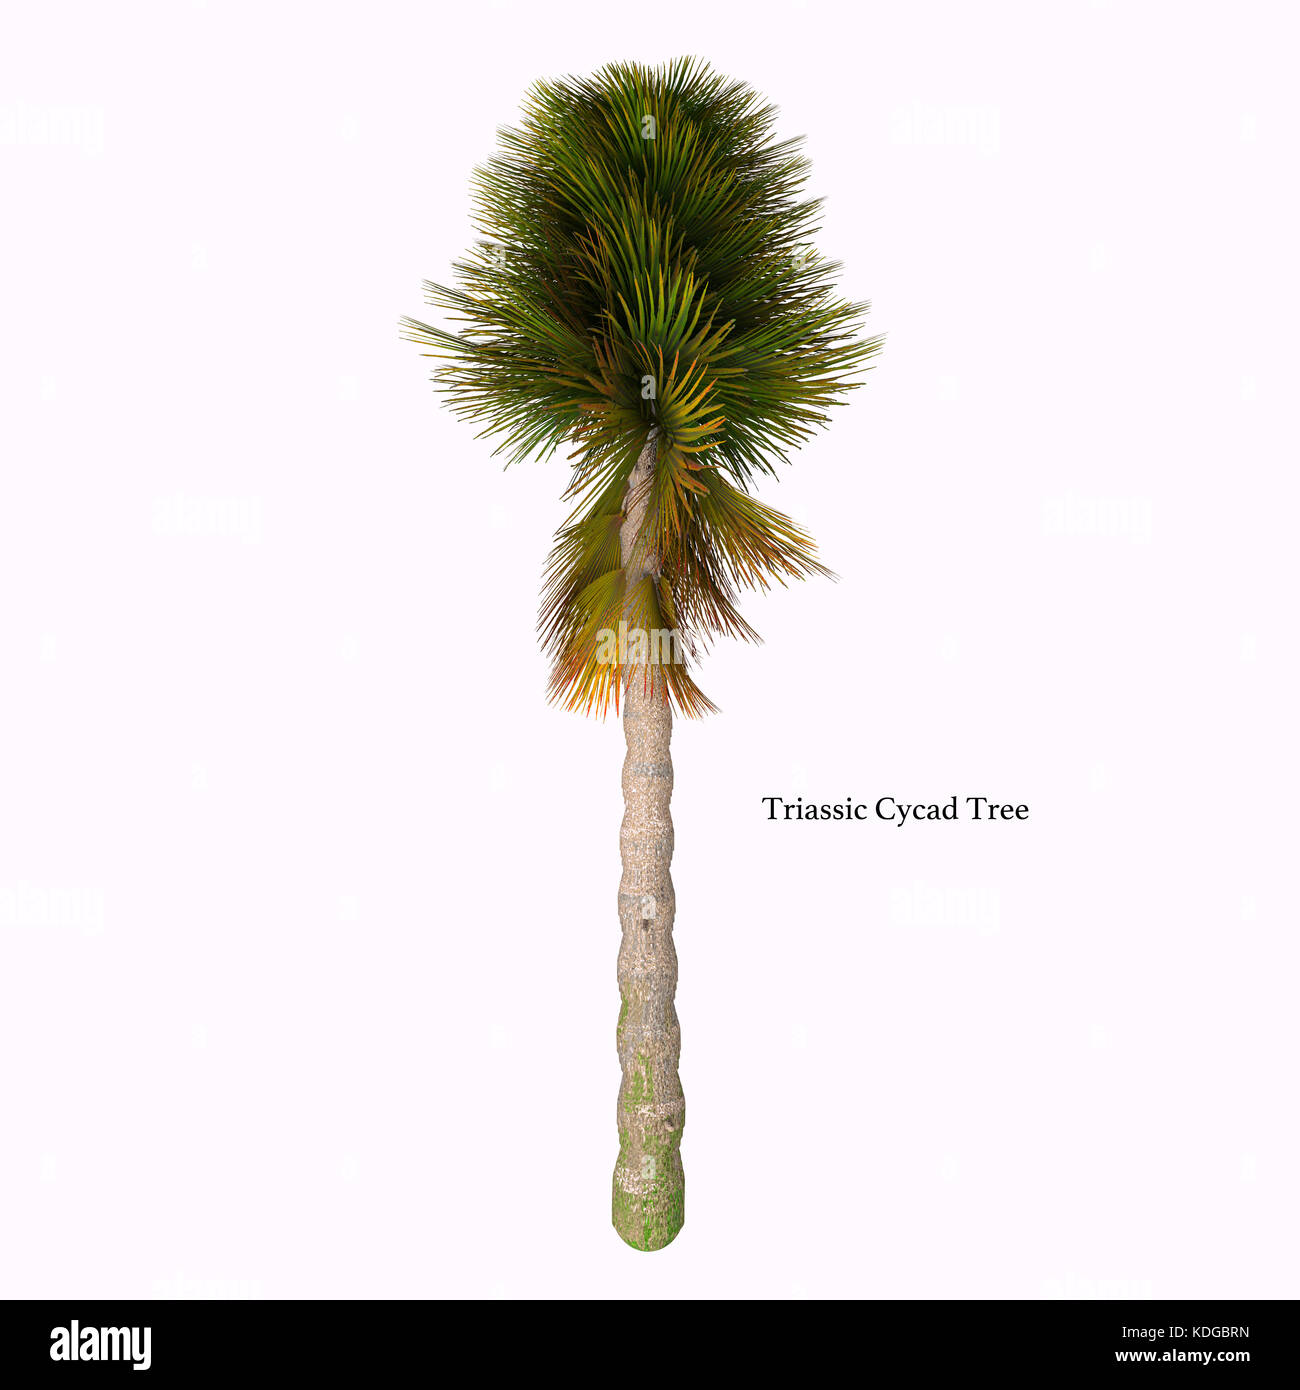 Triassic Cycad Tree with Font - Cycad are seed plants with a long fossil history that were more abundant and more - Stock Image